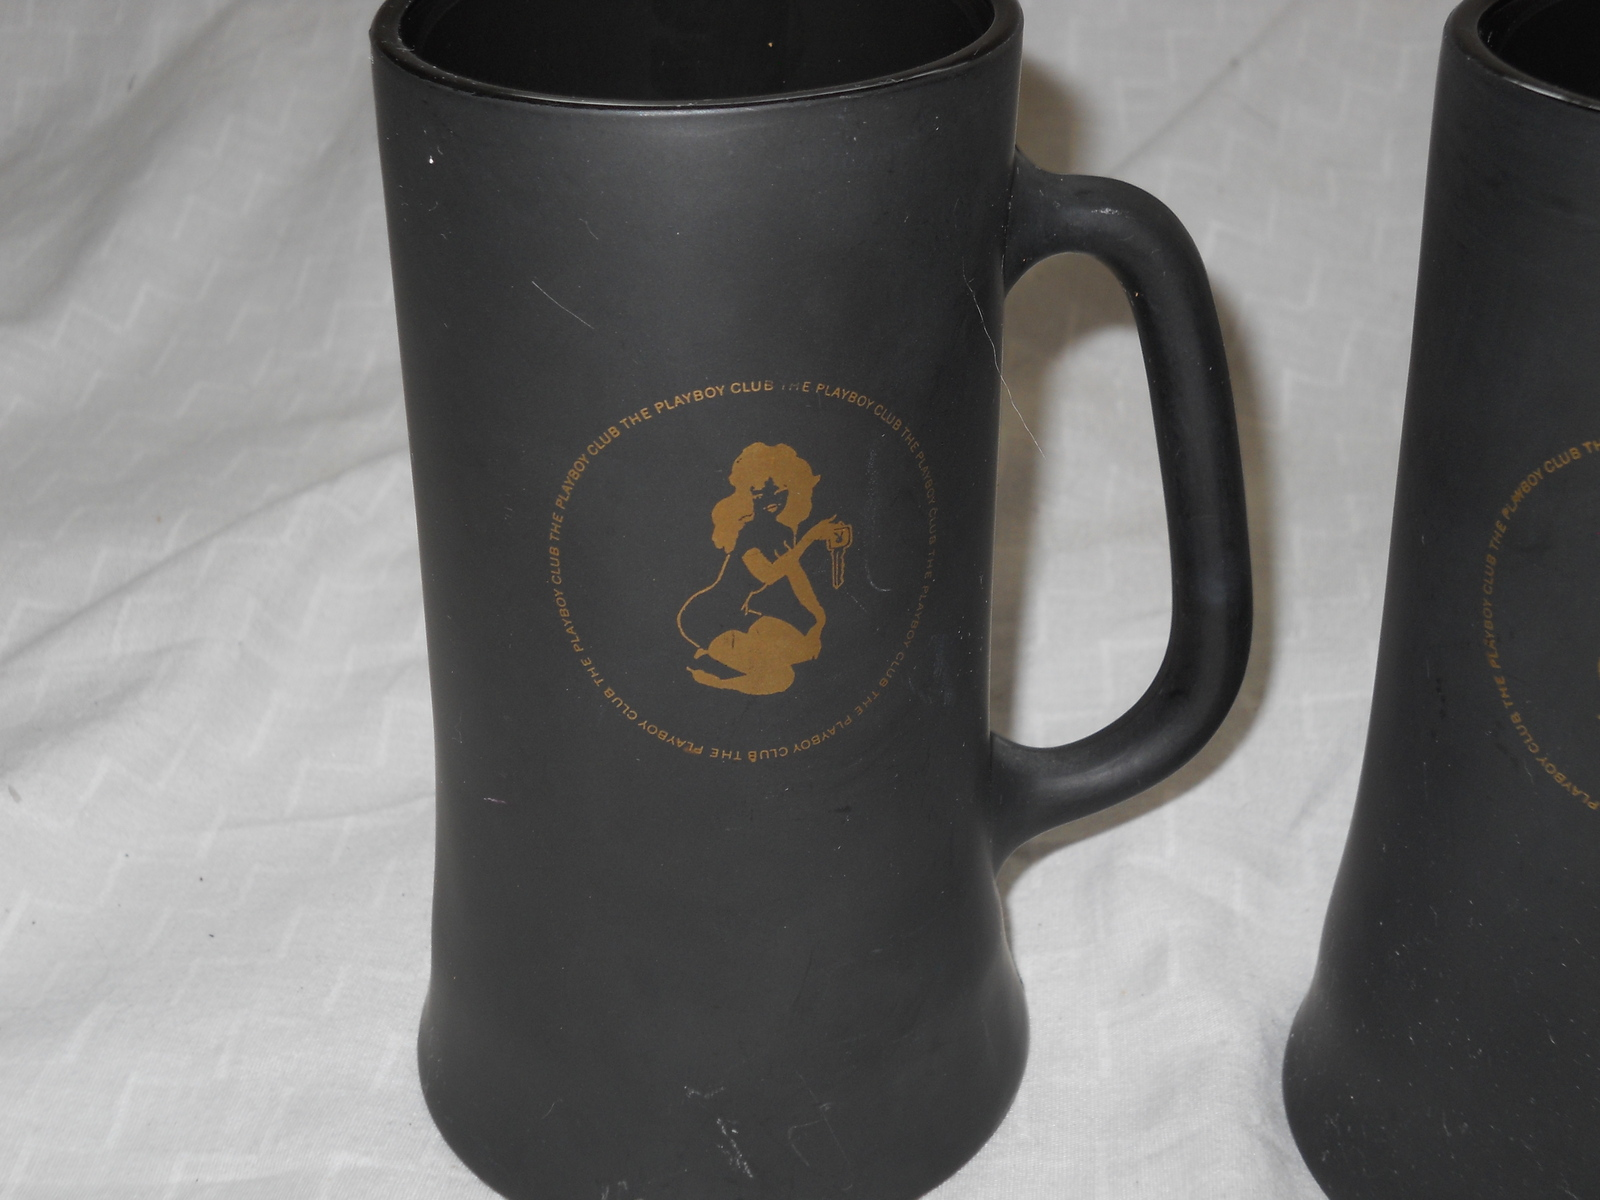 TWO PLAYBOY CLUB BLACK & GOLD FROSTY GLASS COFFEE MUGS, BEER STEIN CUP VTG 60's image 3